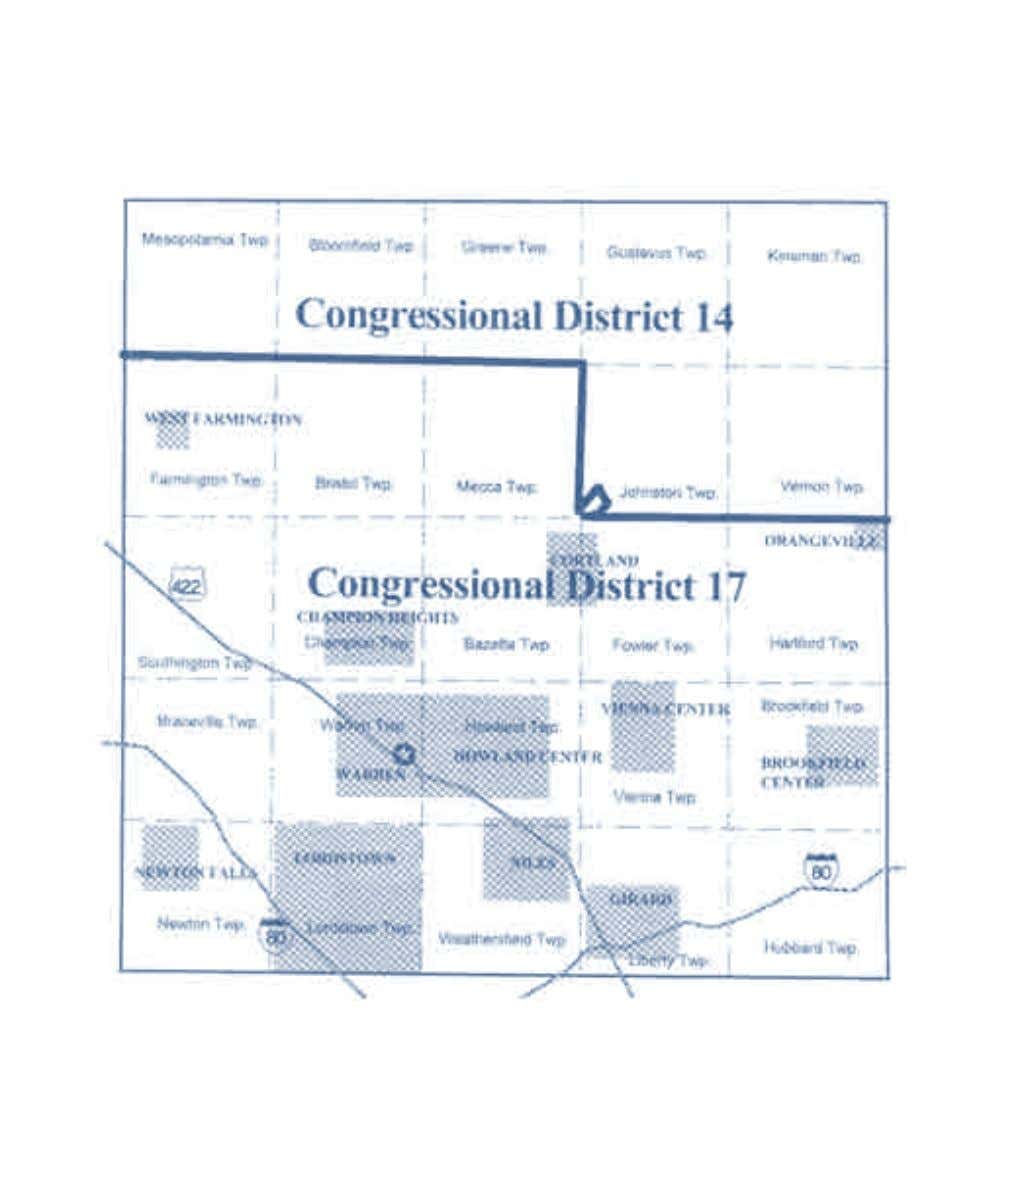 2002-2012 OhiO District Maps Trumbull County Congressional Districts 24 Office of the Ohio Secretary of State